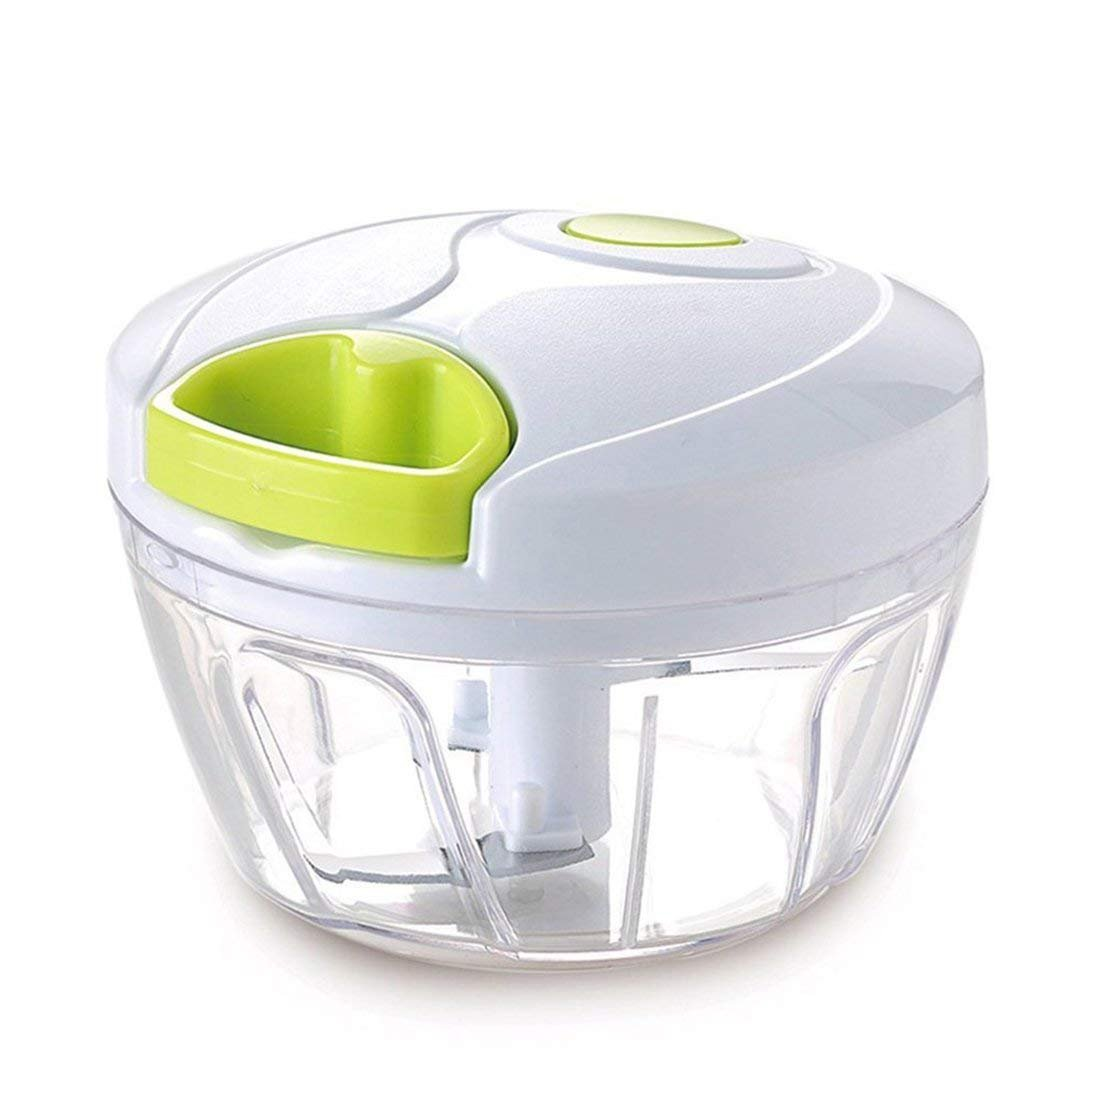 Keynis® Fruit and Vegetable Onion Chopper Manual Chopping Cutting Mix with 3 Blades